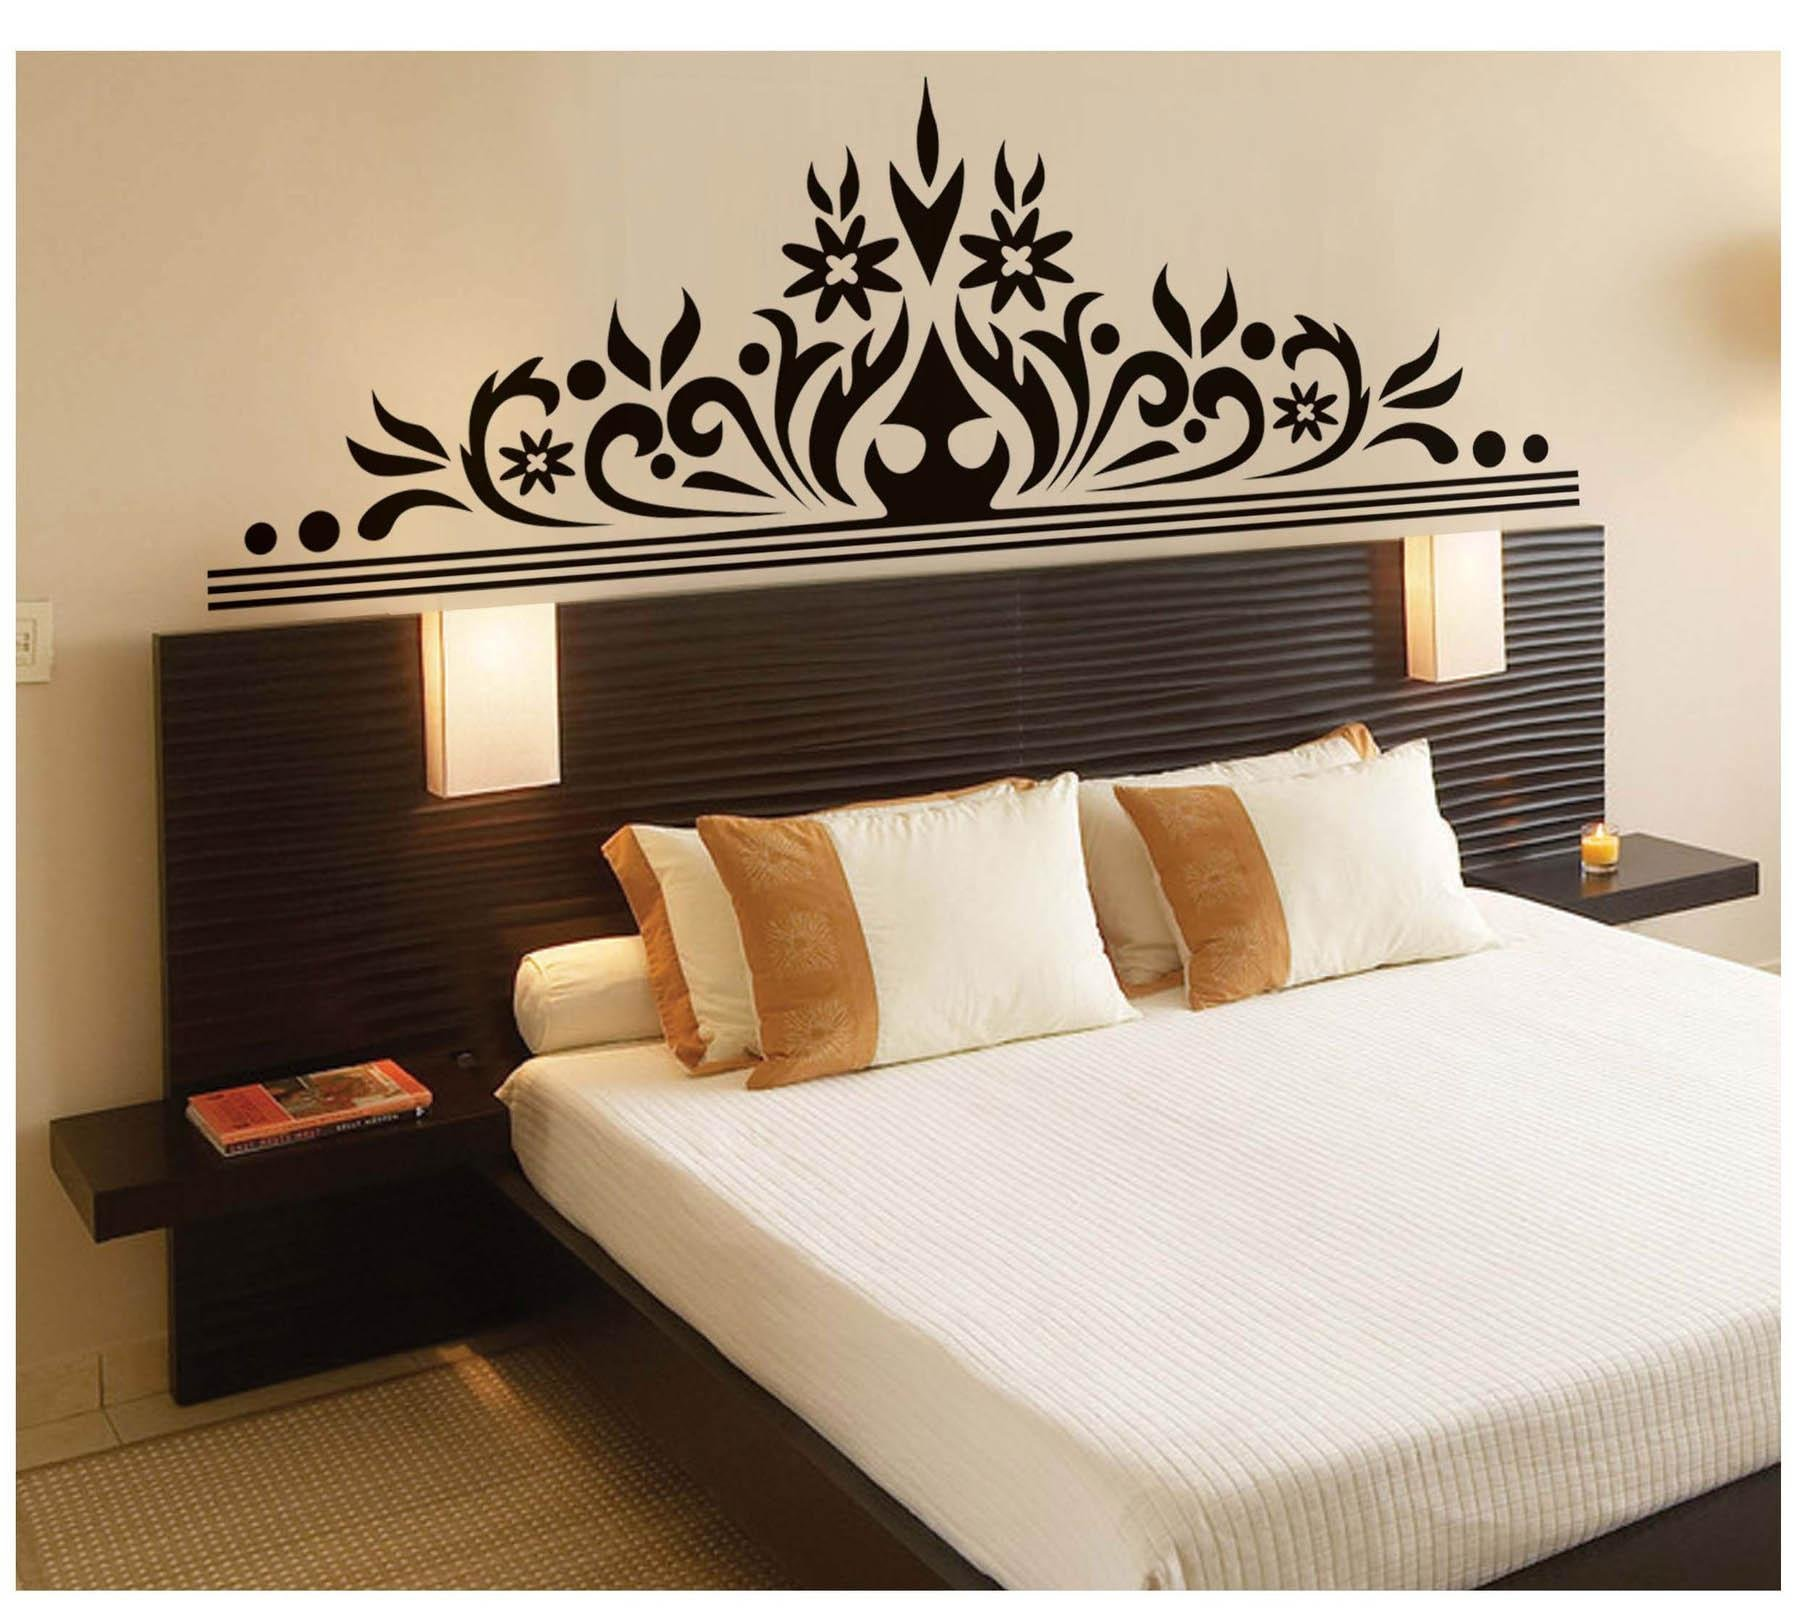 Best Bedroom Awesome Azure Wall Stickers For Bedrooms With With Pictures